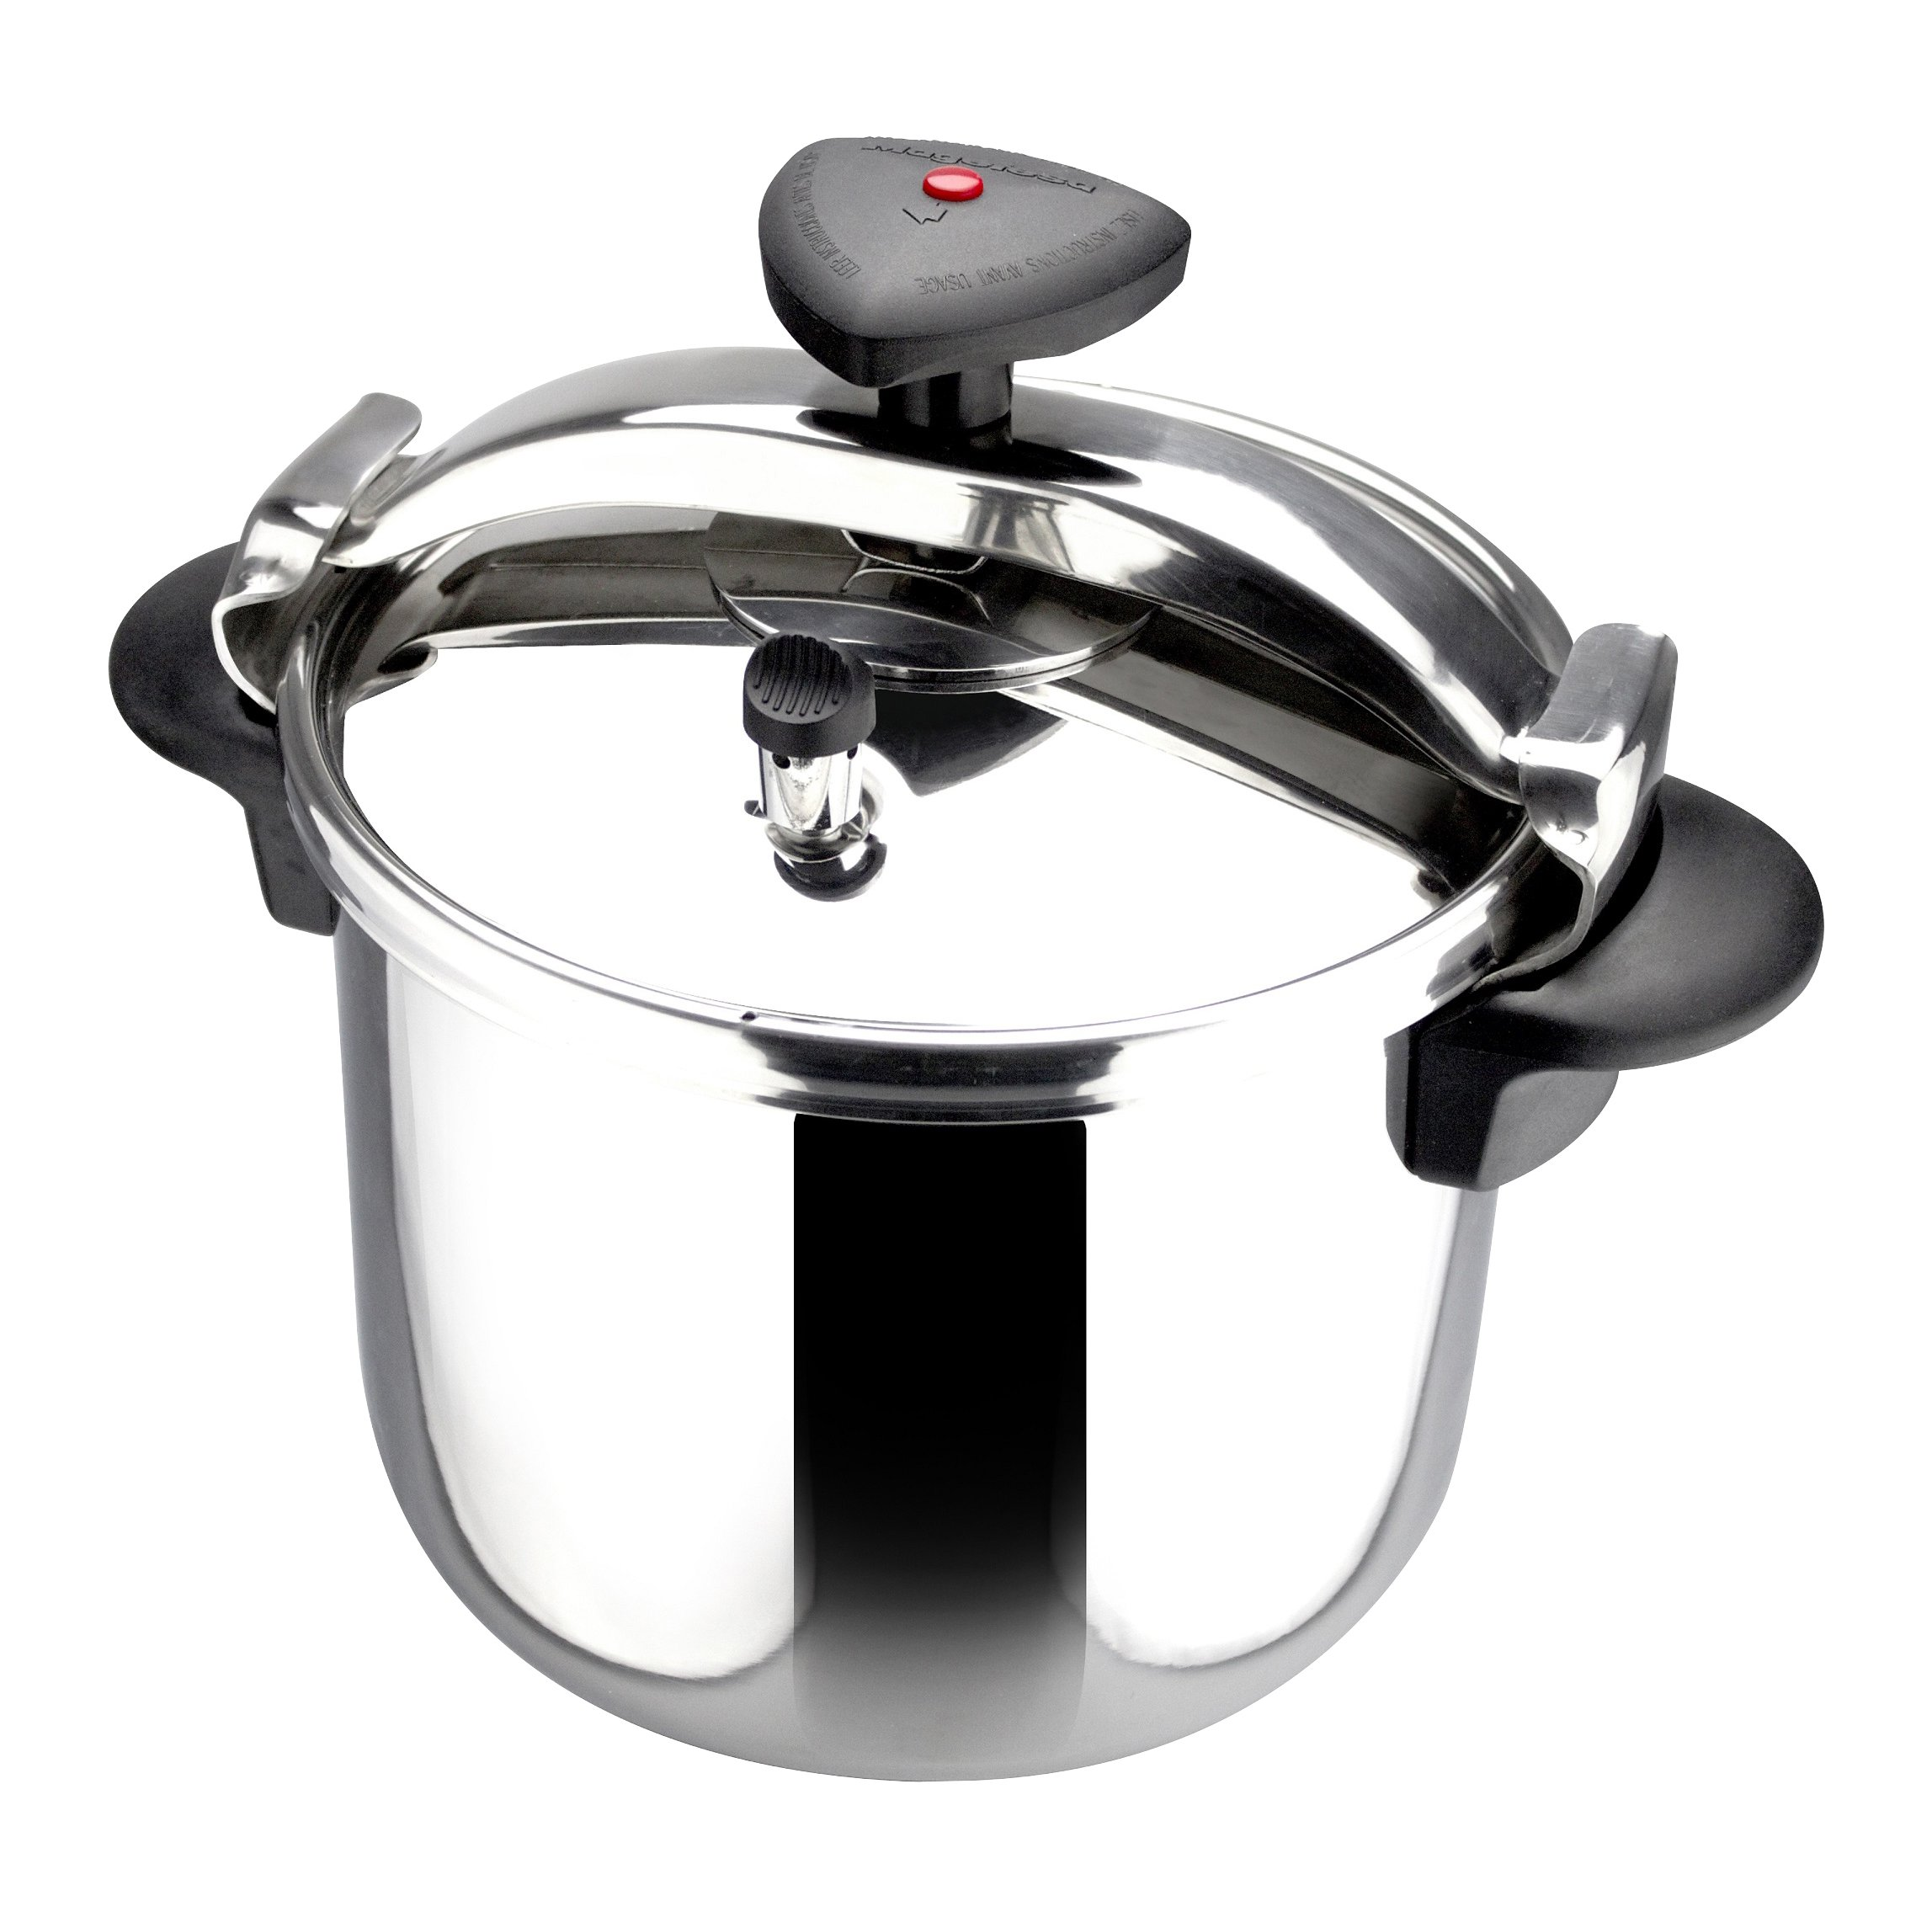 Magefesa 12 quart Star R Stainless Steel Fast Pressure Cooker, Large, Silver